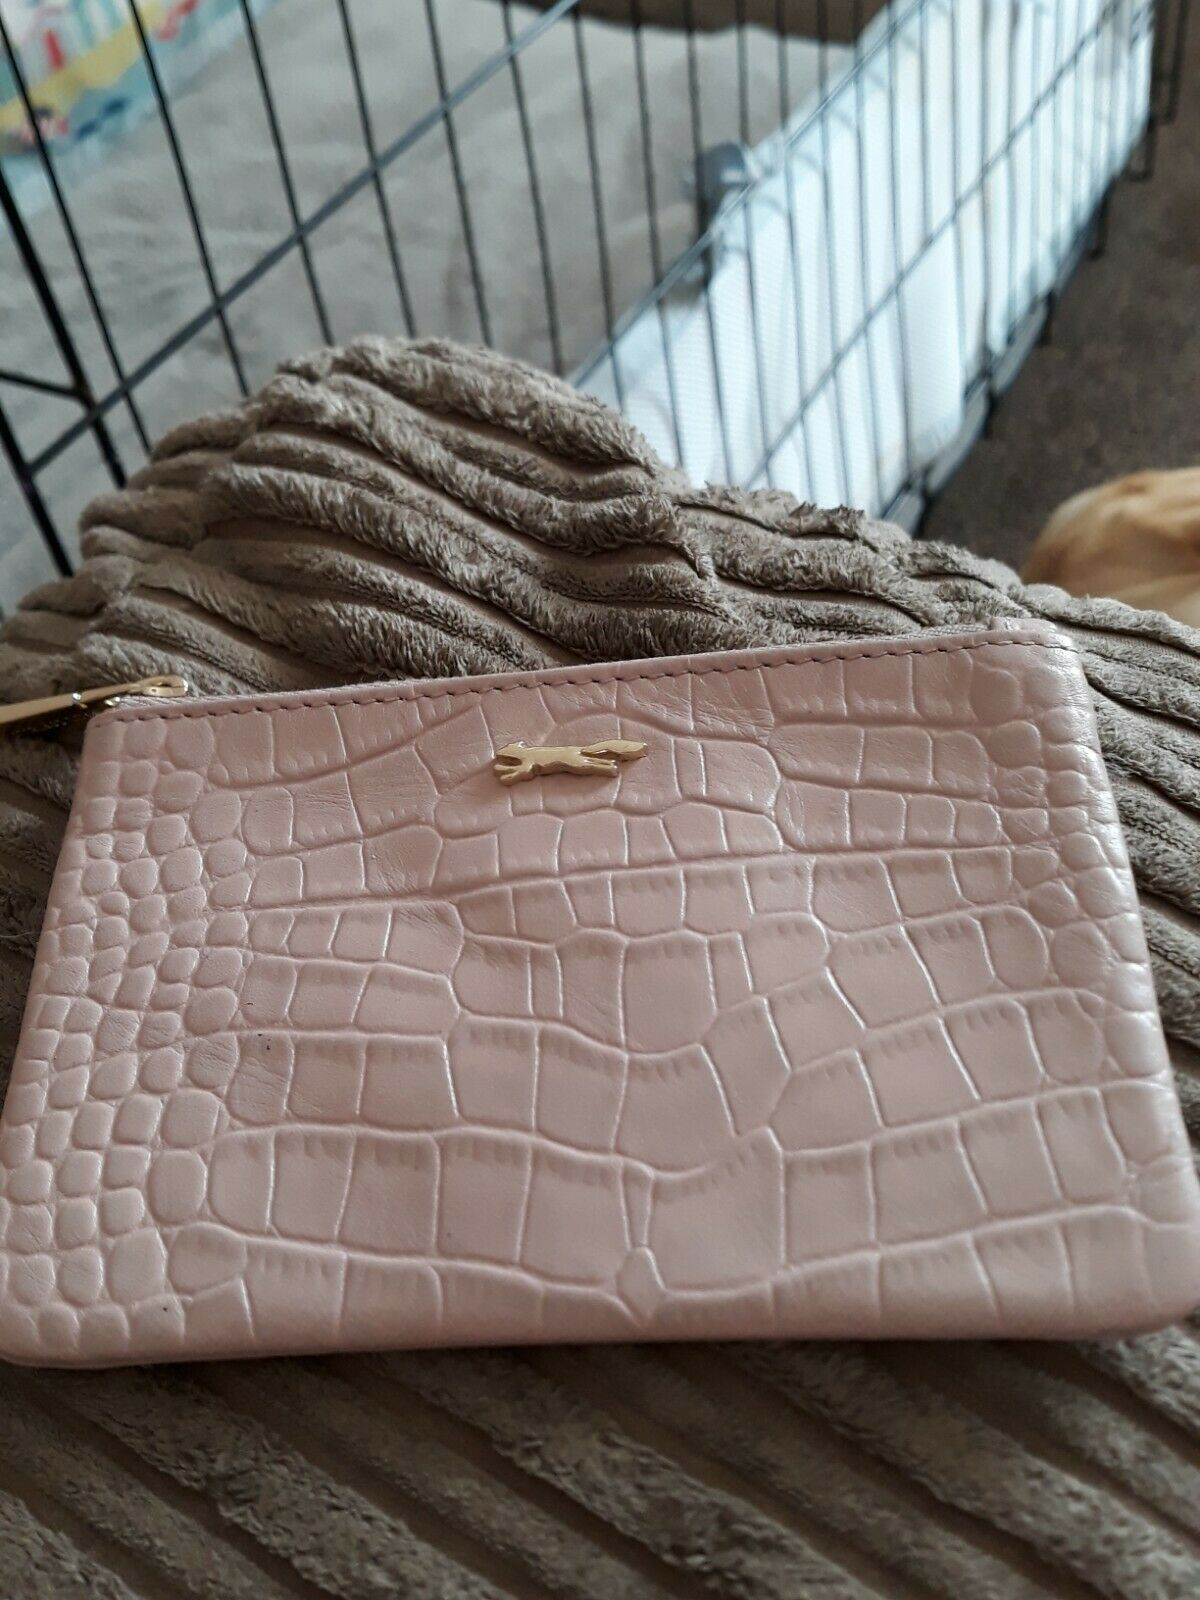 Leather Purse By Paul Costello 6x4